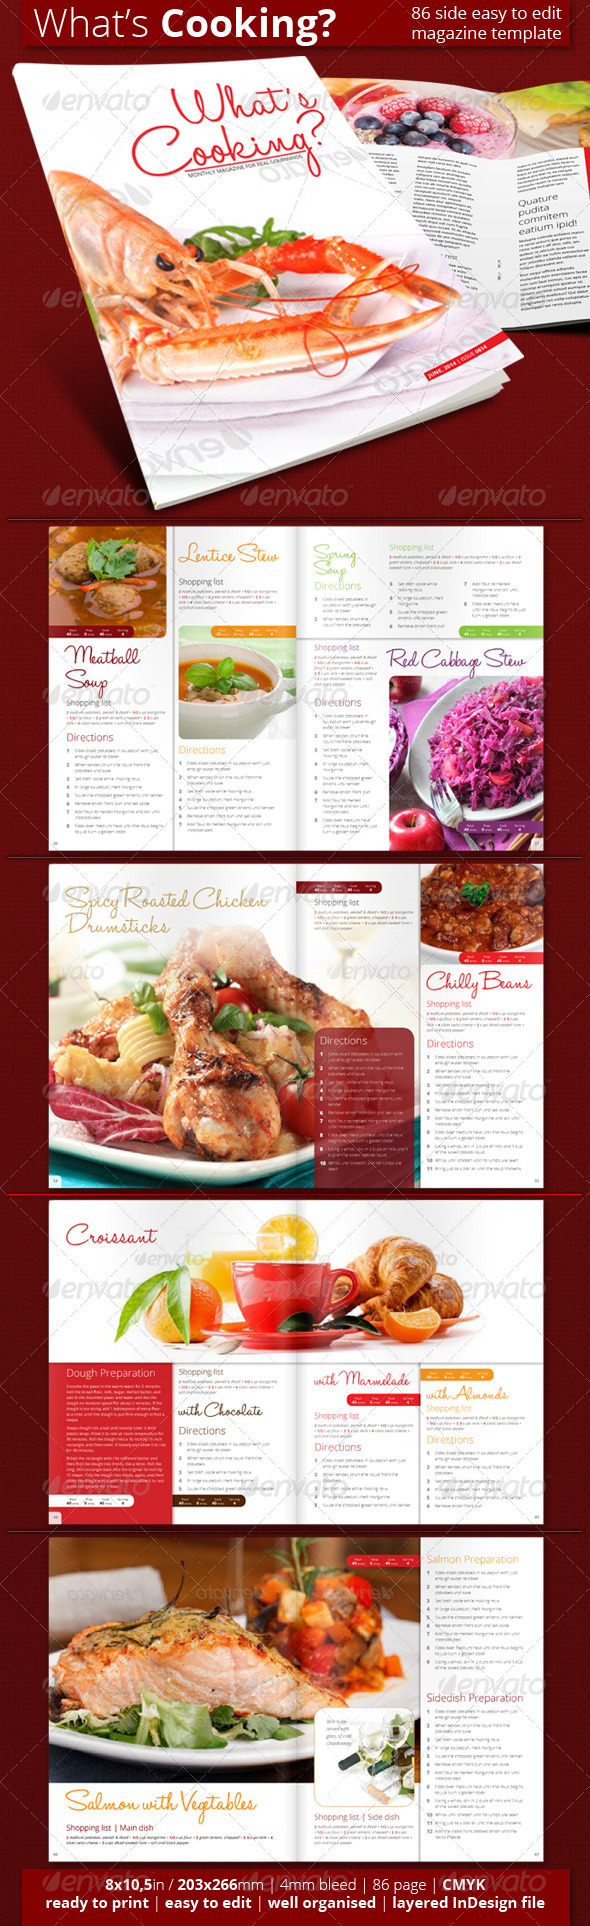 What's Cooking - Magazines Print Templates